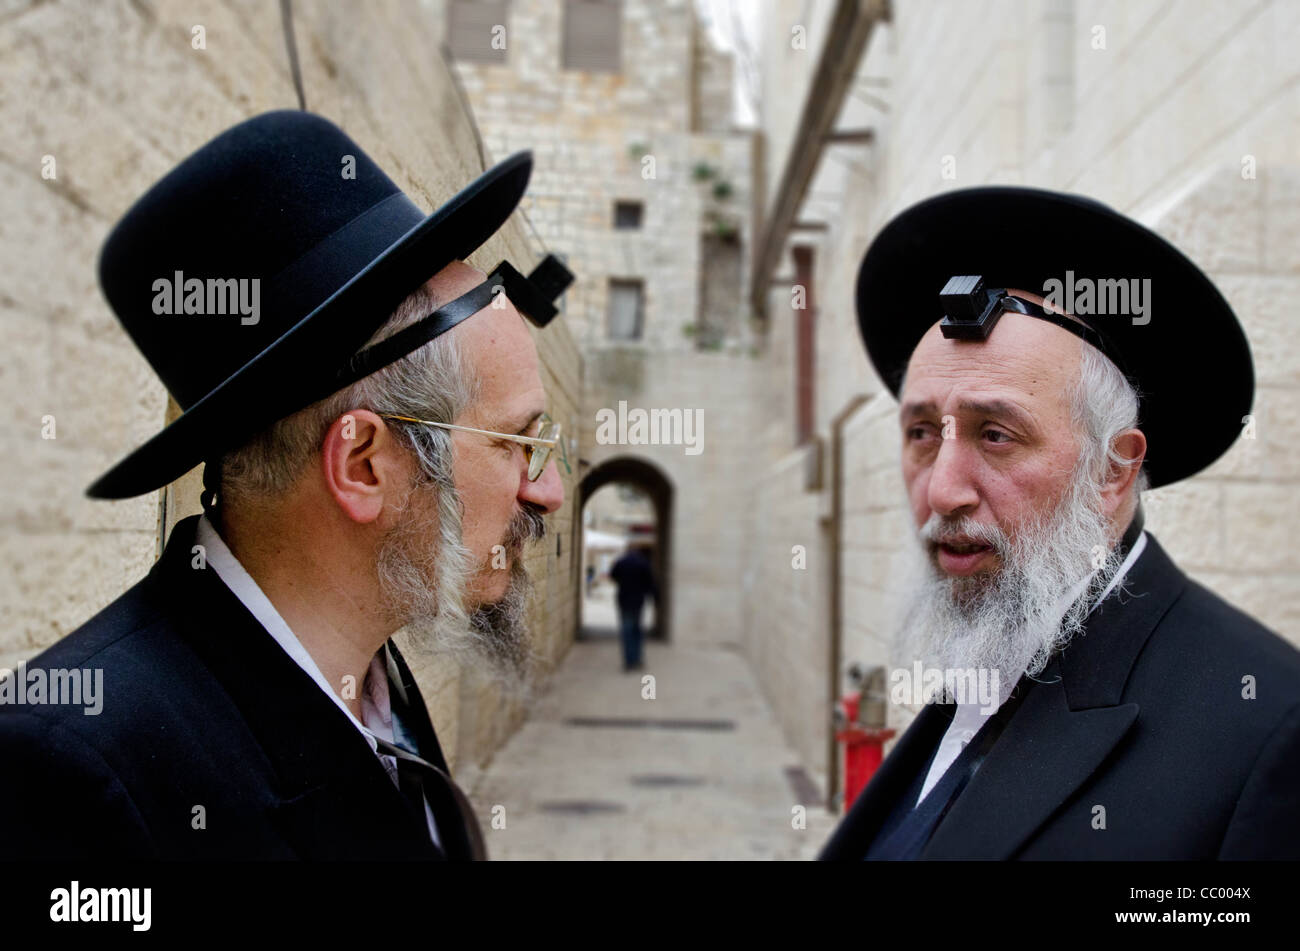 jewish single men in hague In orthodox jewish circles, single women are largely forgotten  but there's an extra burden on women due to the disproportionate amount of single men.